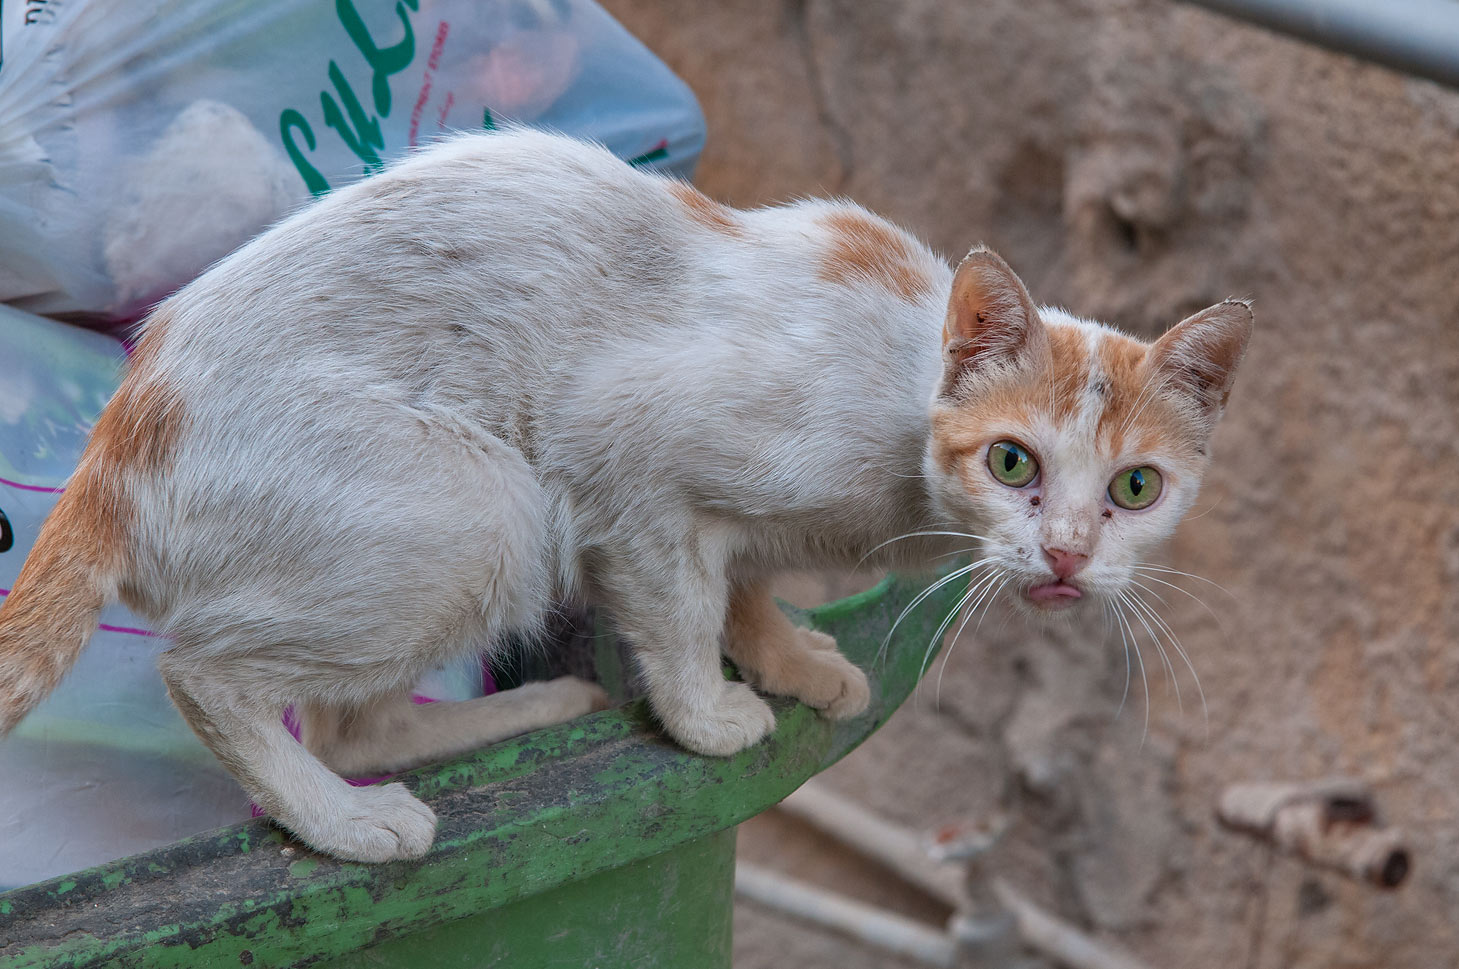 Cat on a dumpster at Al Nabaah St., Musheirib area. Doha, Qatar